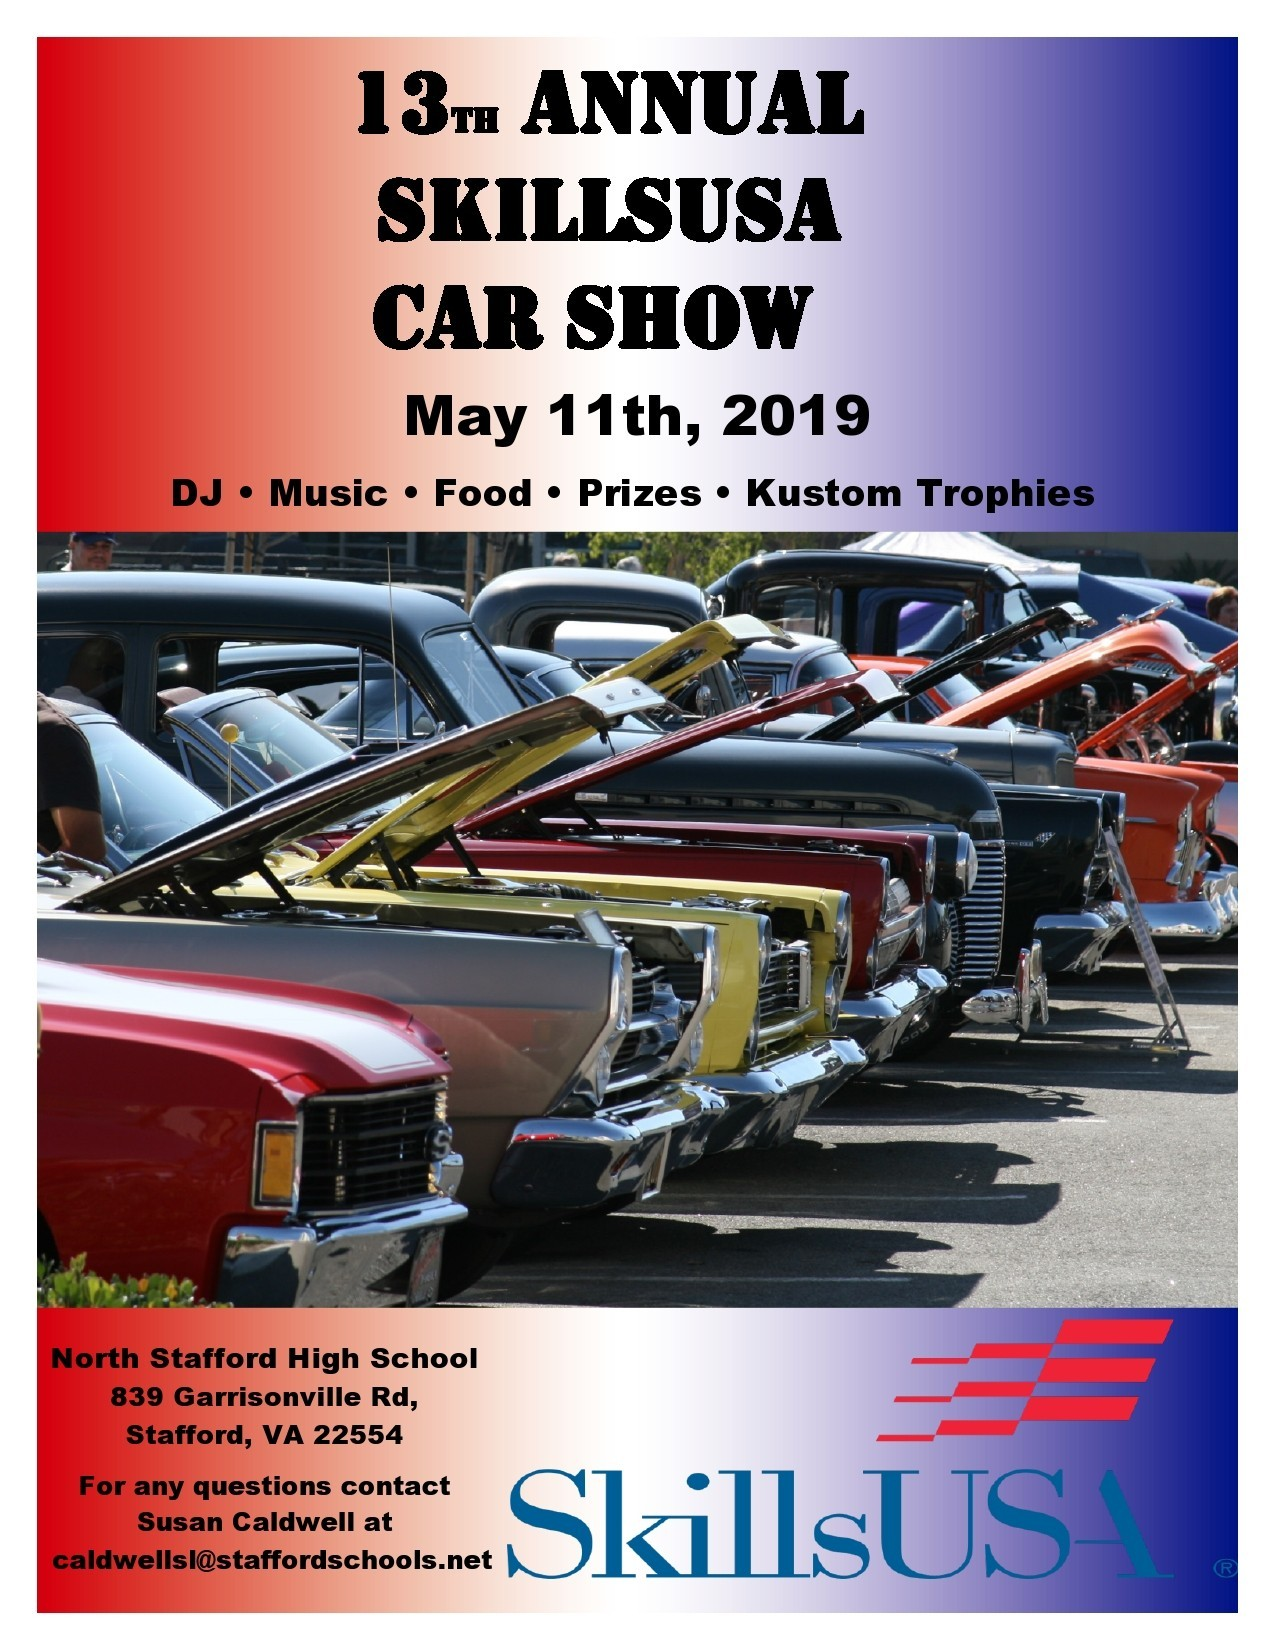 Free car show flyer 23